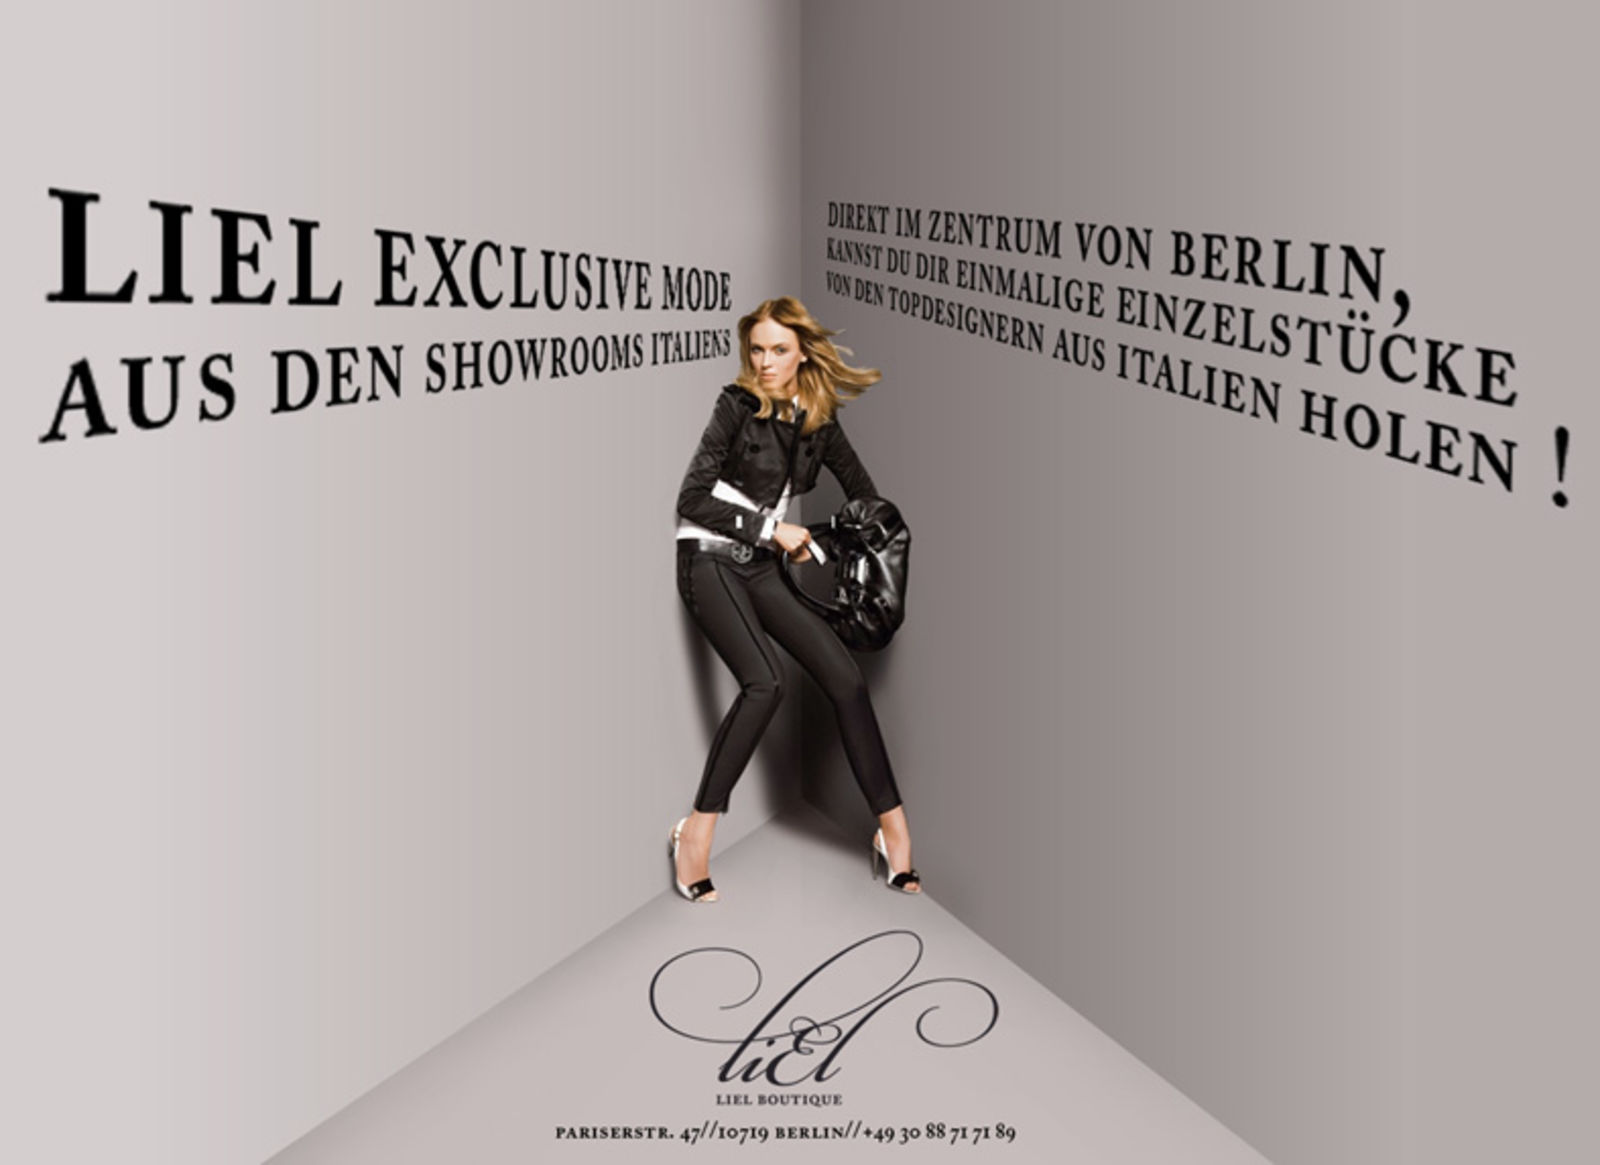 LiEl Boutique in Berlin (Bild 5)